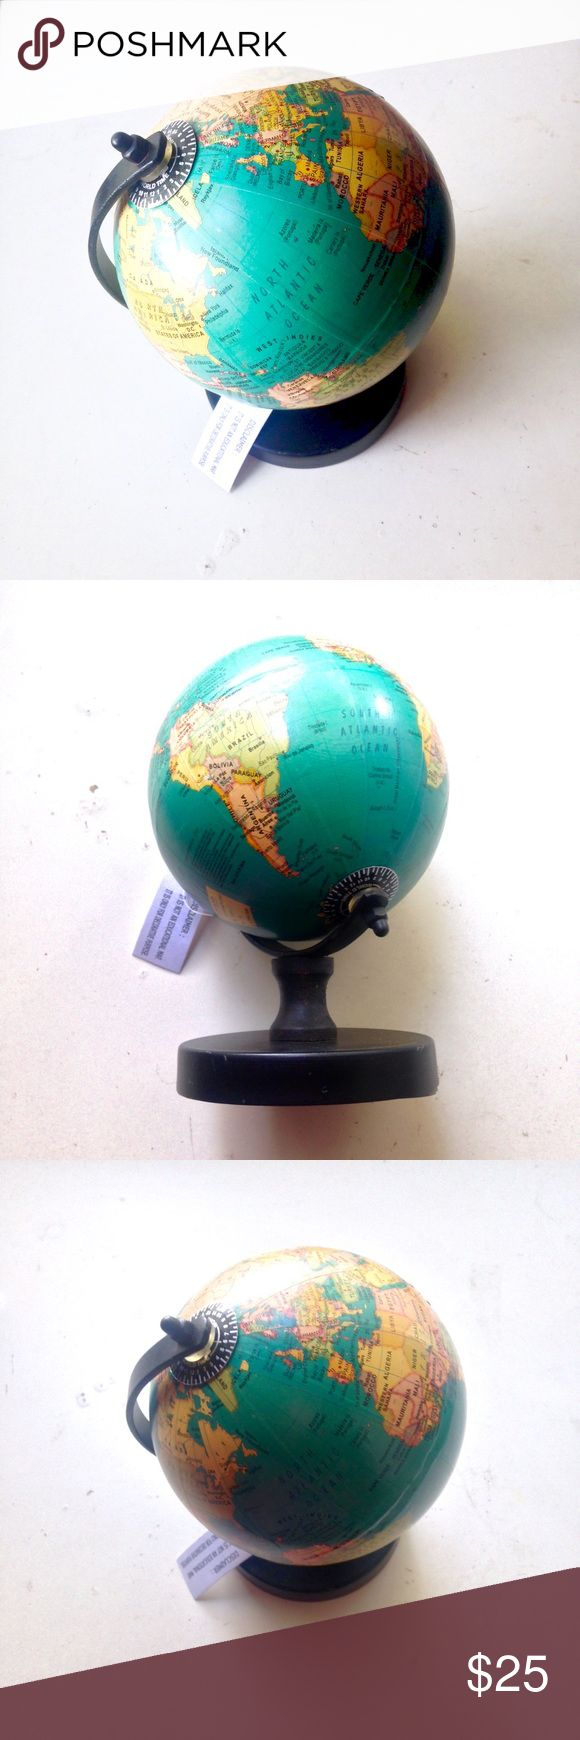 NWT Mini World Globe Map Anthropologie Brand new mini globe with tag. #globe #geography #earth #map #home #homedecor #cute #depop #depopfamous #brandnew #newwithtags #new Urban Outfitters Other